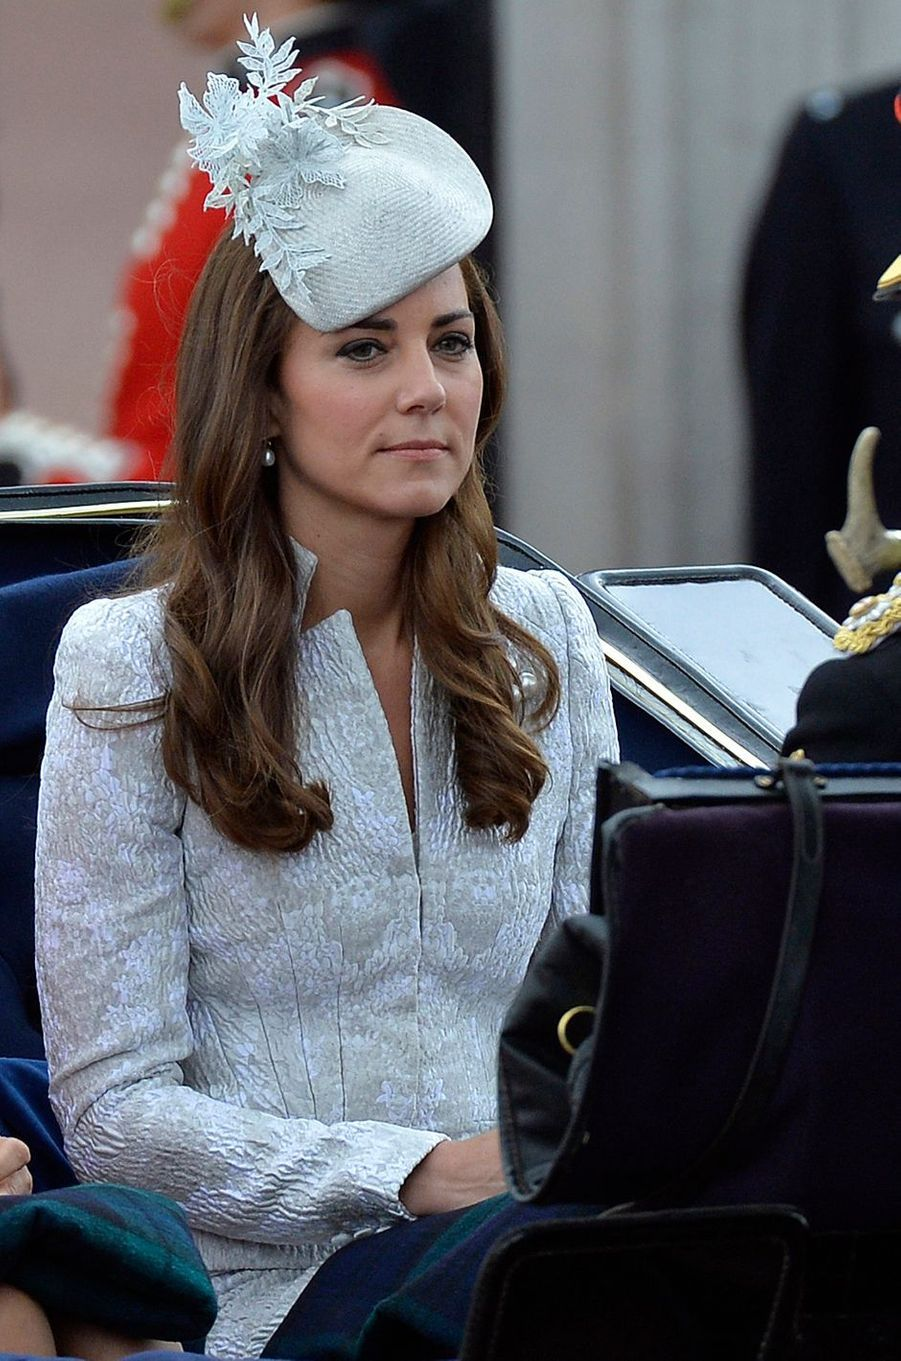 La duchesse Catherine de Cambridge en Alexander McQueen à la cérémonie Trooping the Colour à Londres le 14 juin 2014